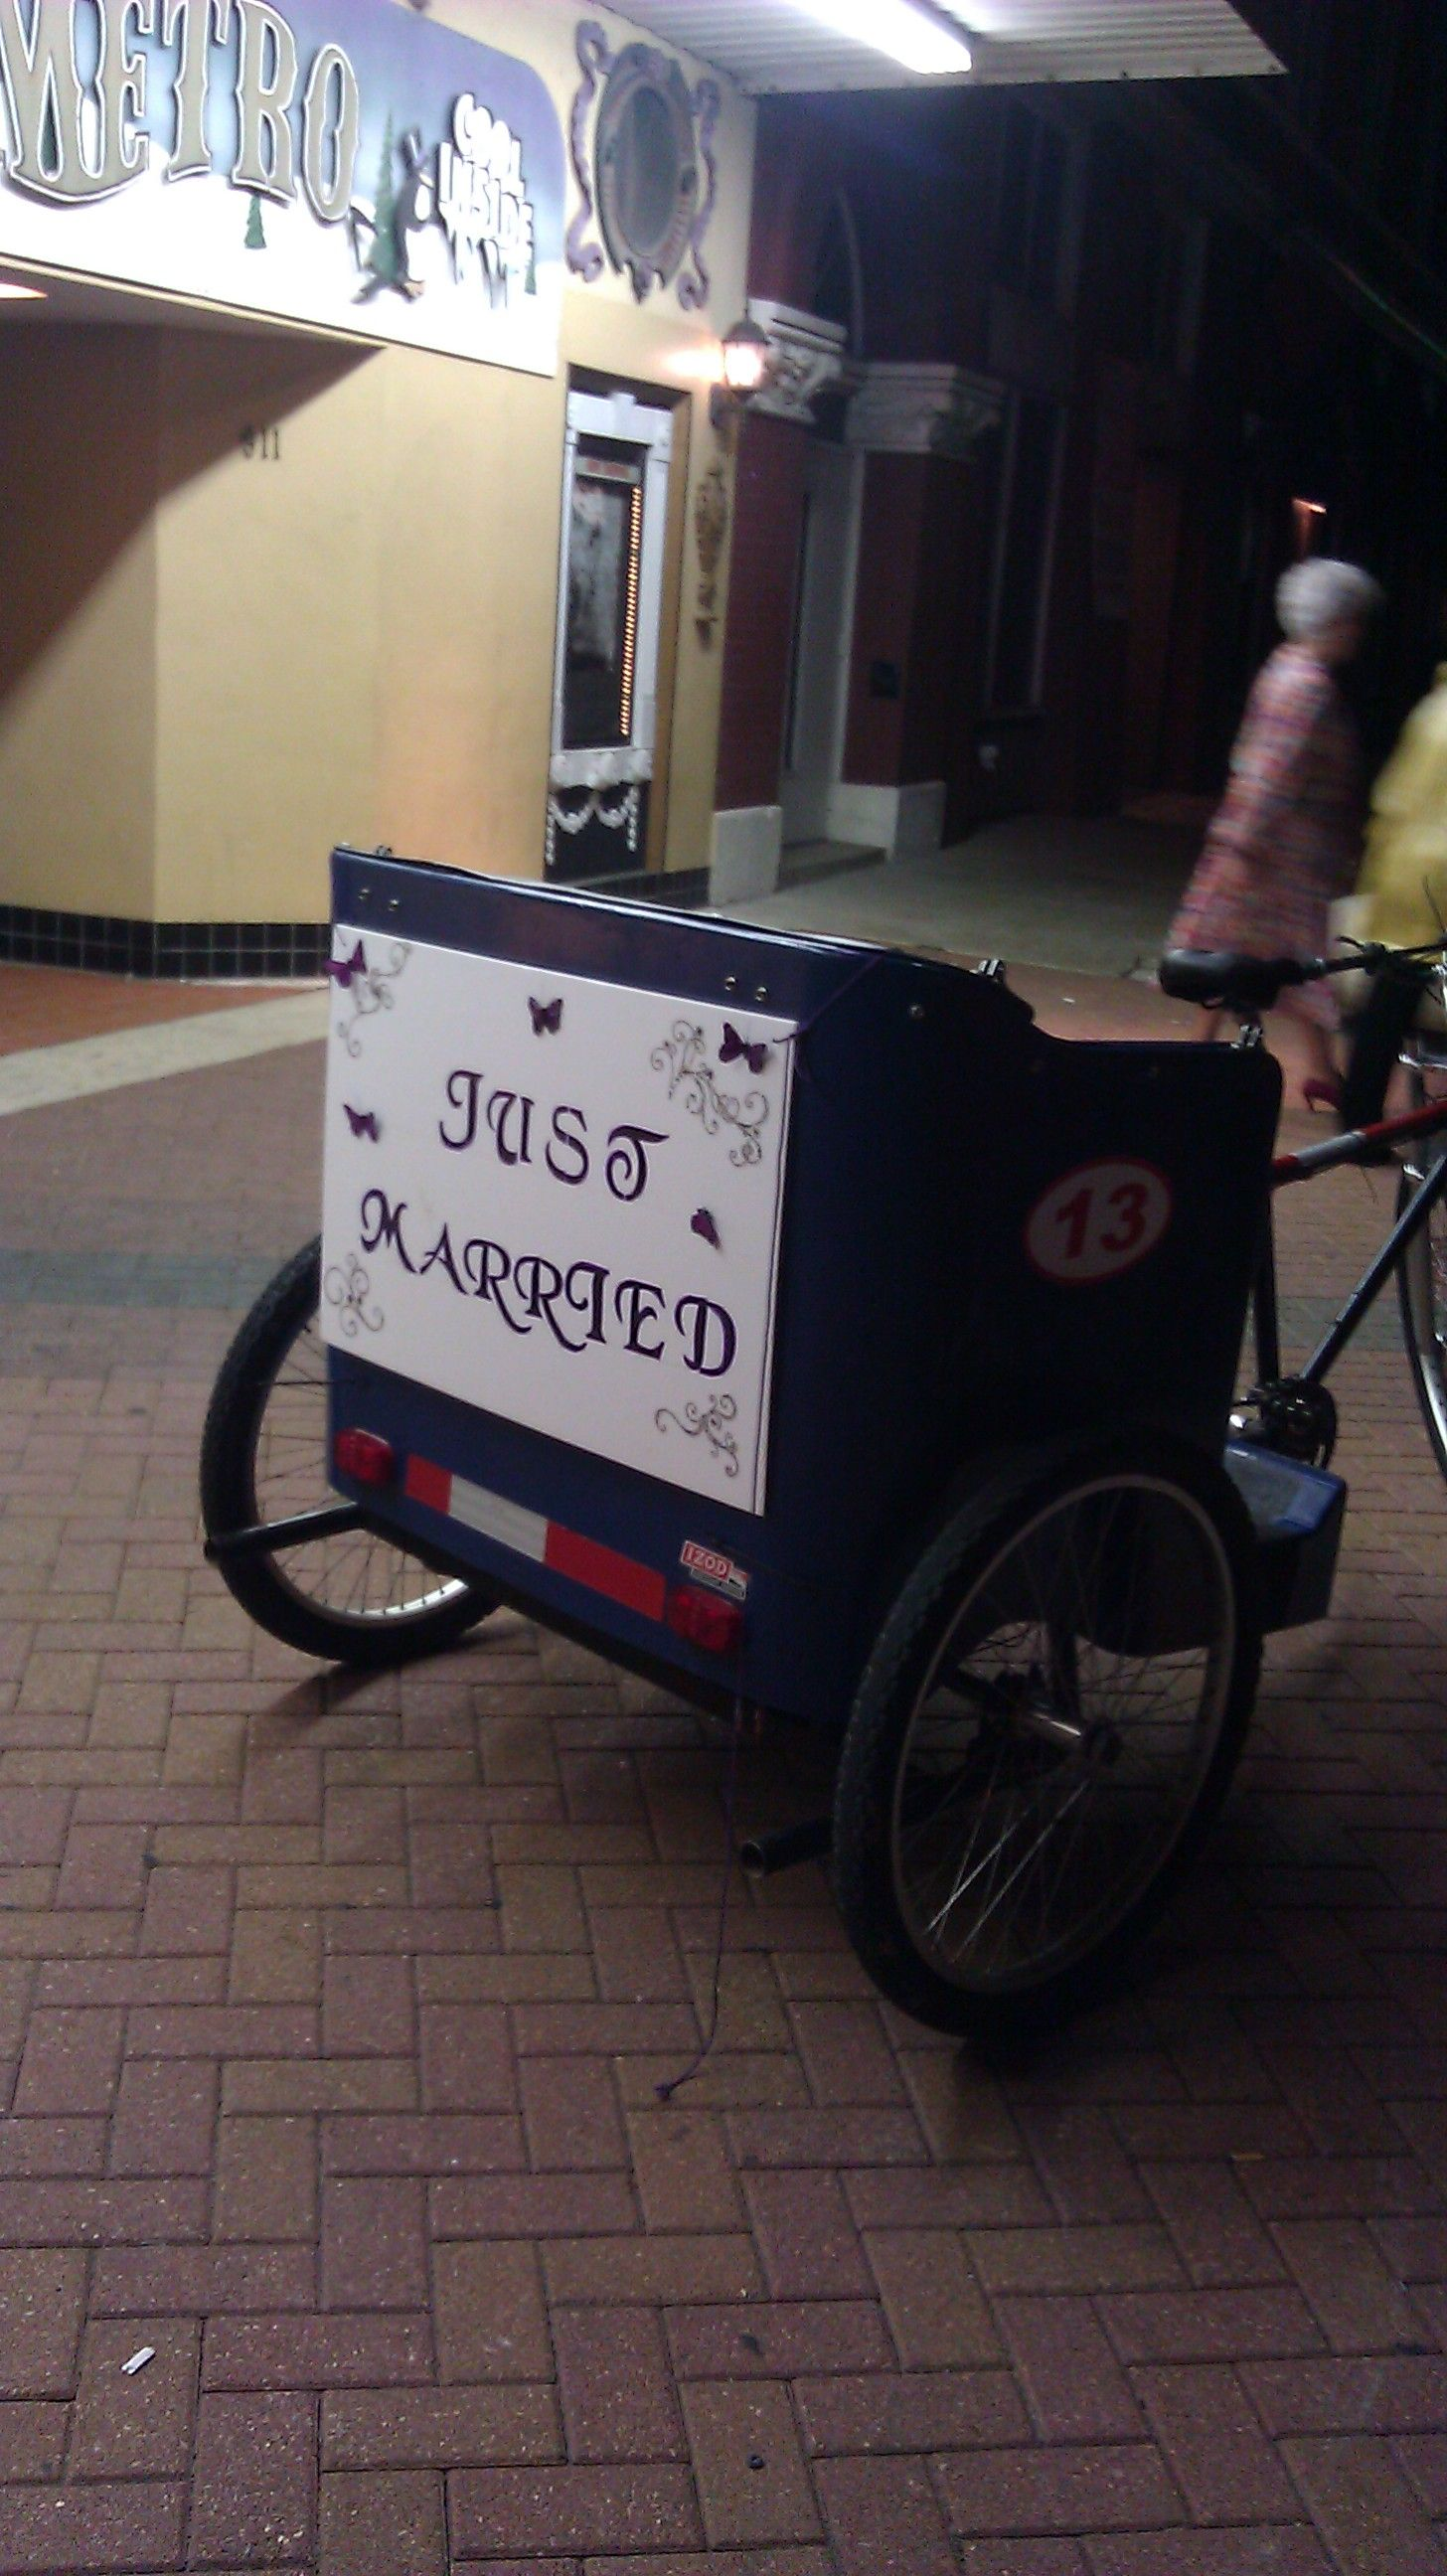 We need a pedicab to take us to our hotel!